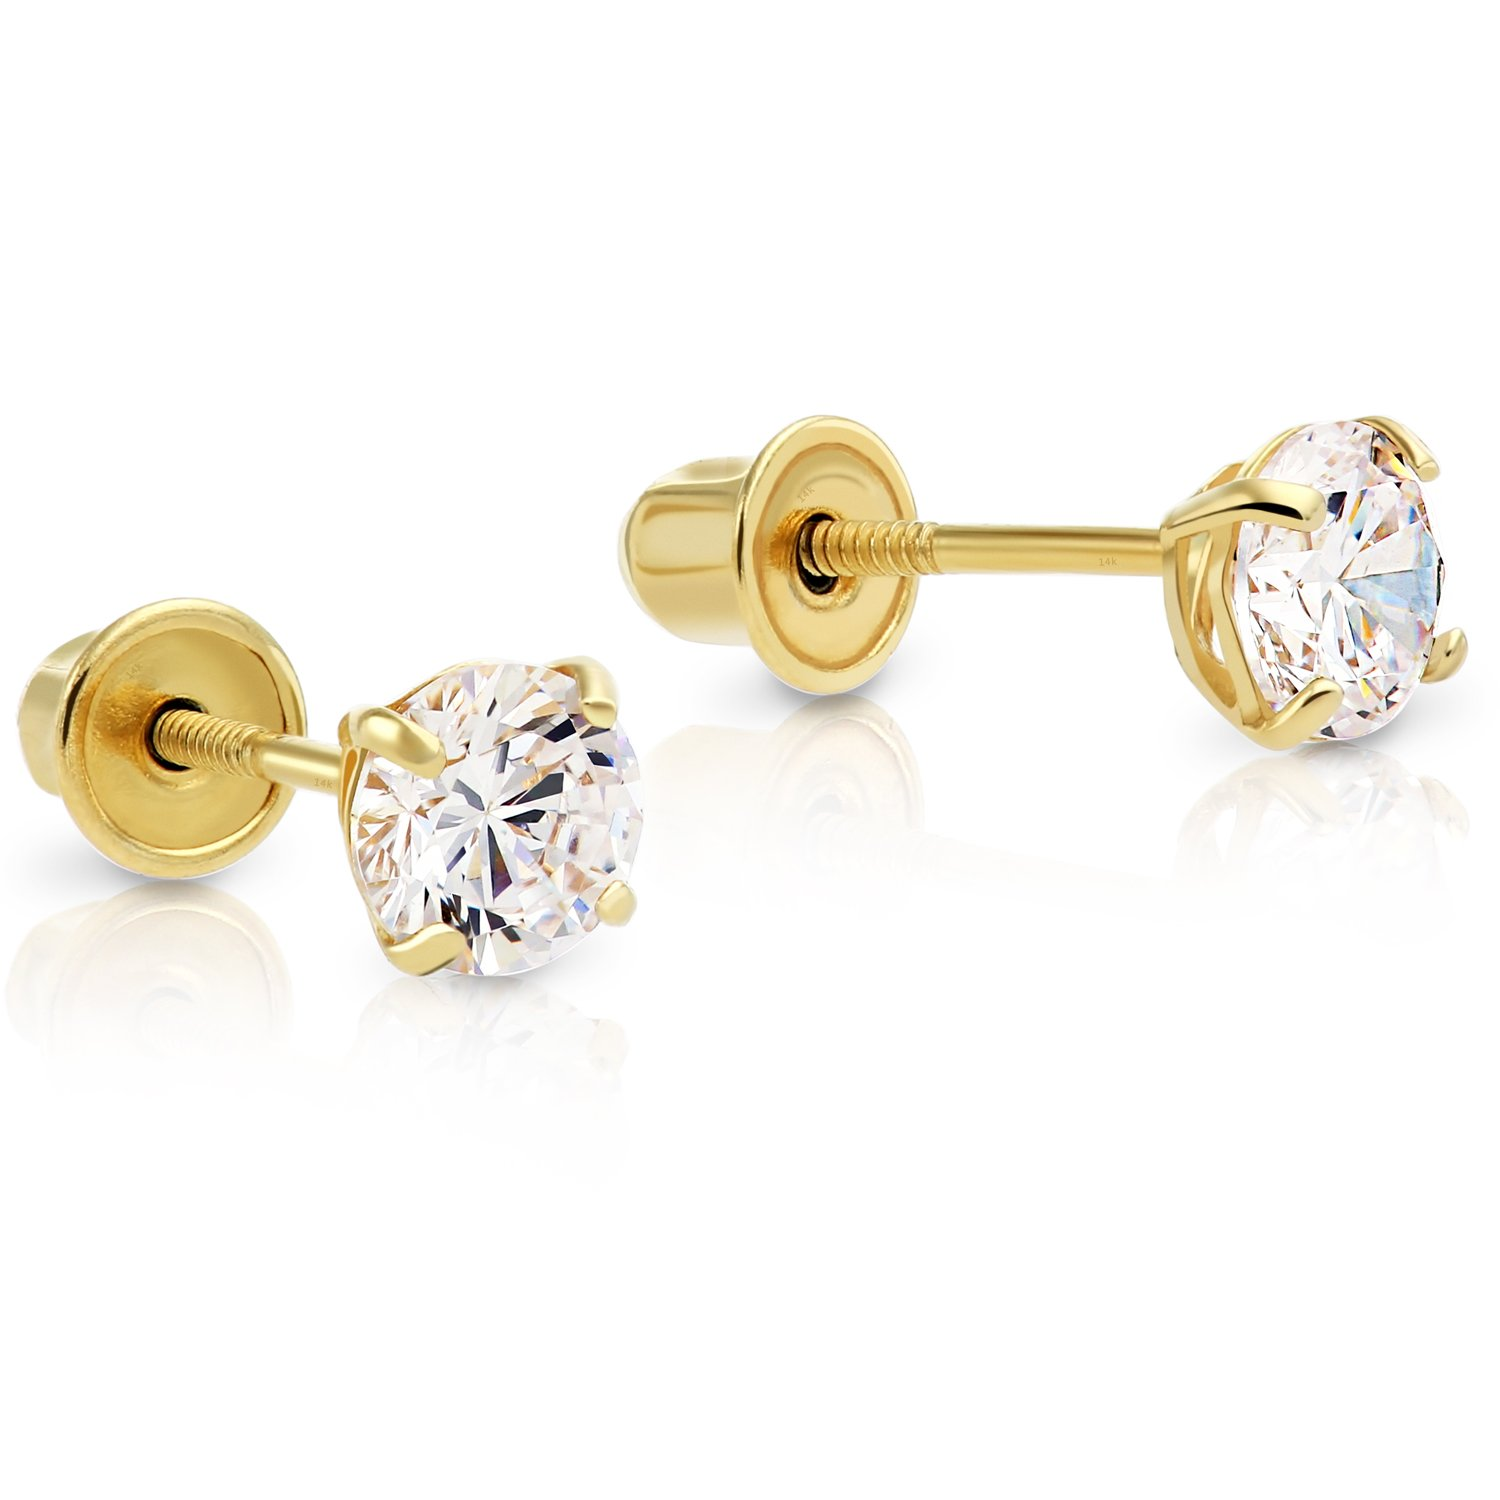 14k Yellow Gold Cubic Zirconia Basket-set Solitaire CZ Stud Earrings with Screw Backs (4mm) by Art and Molly